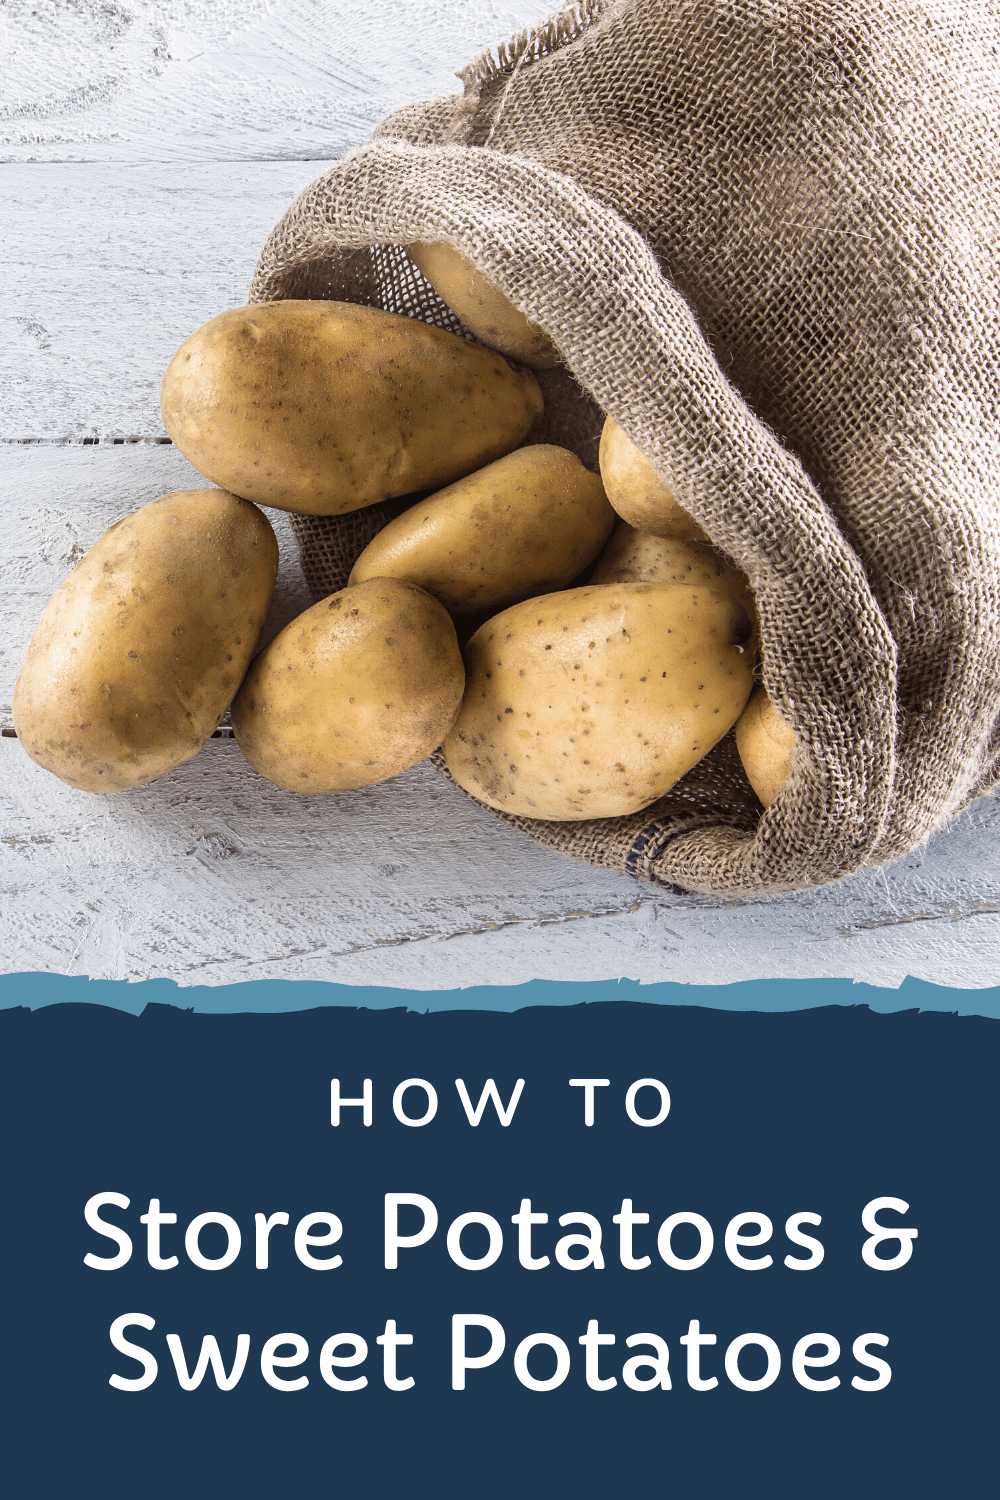 How to store potatoes and sweet potatoes